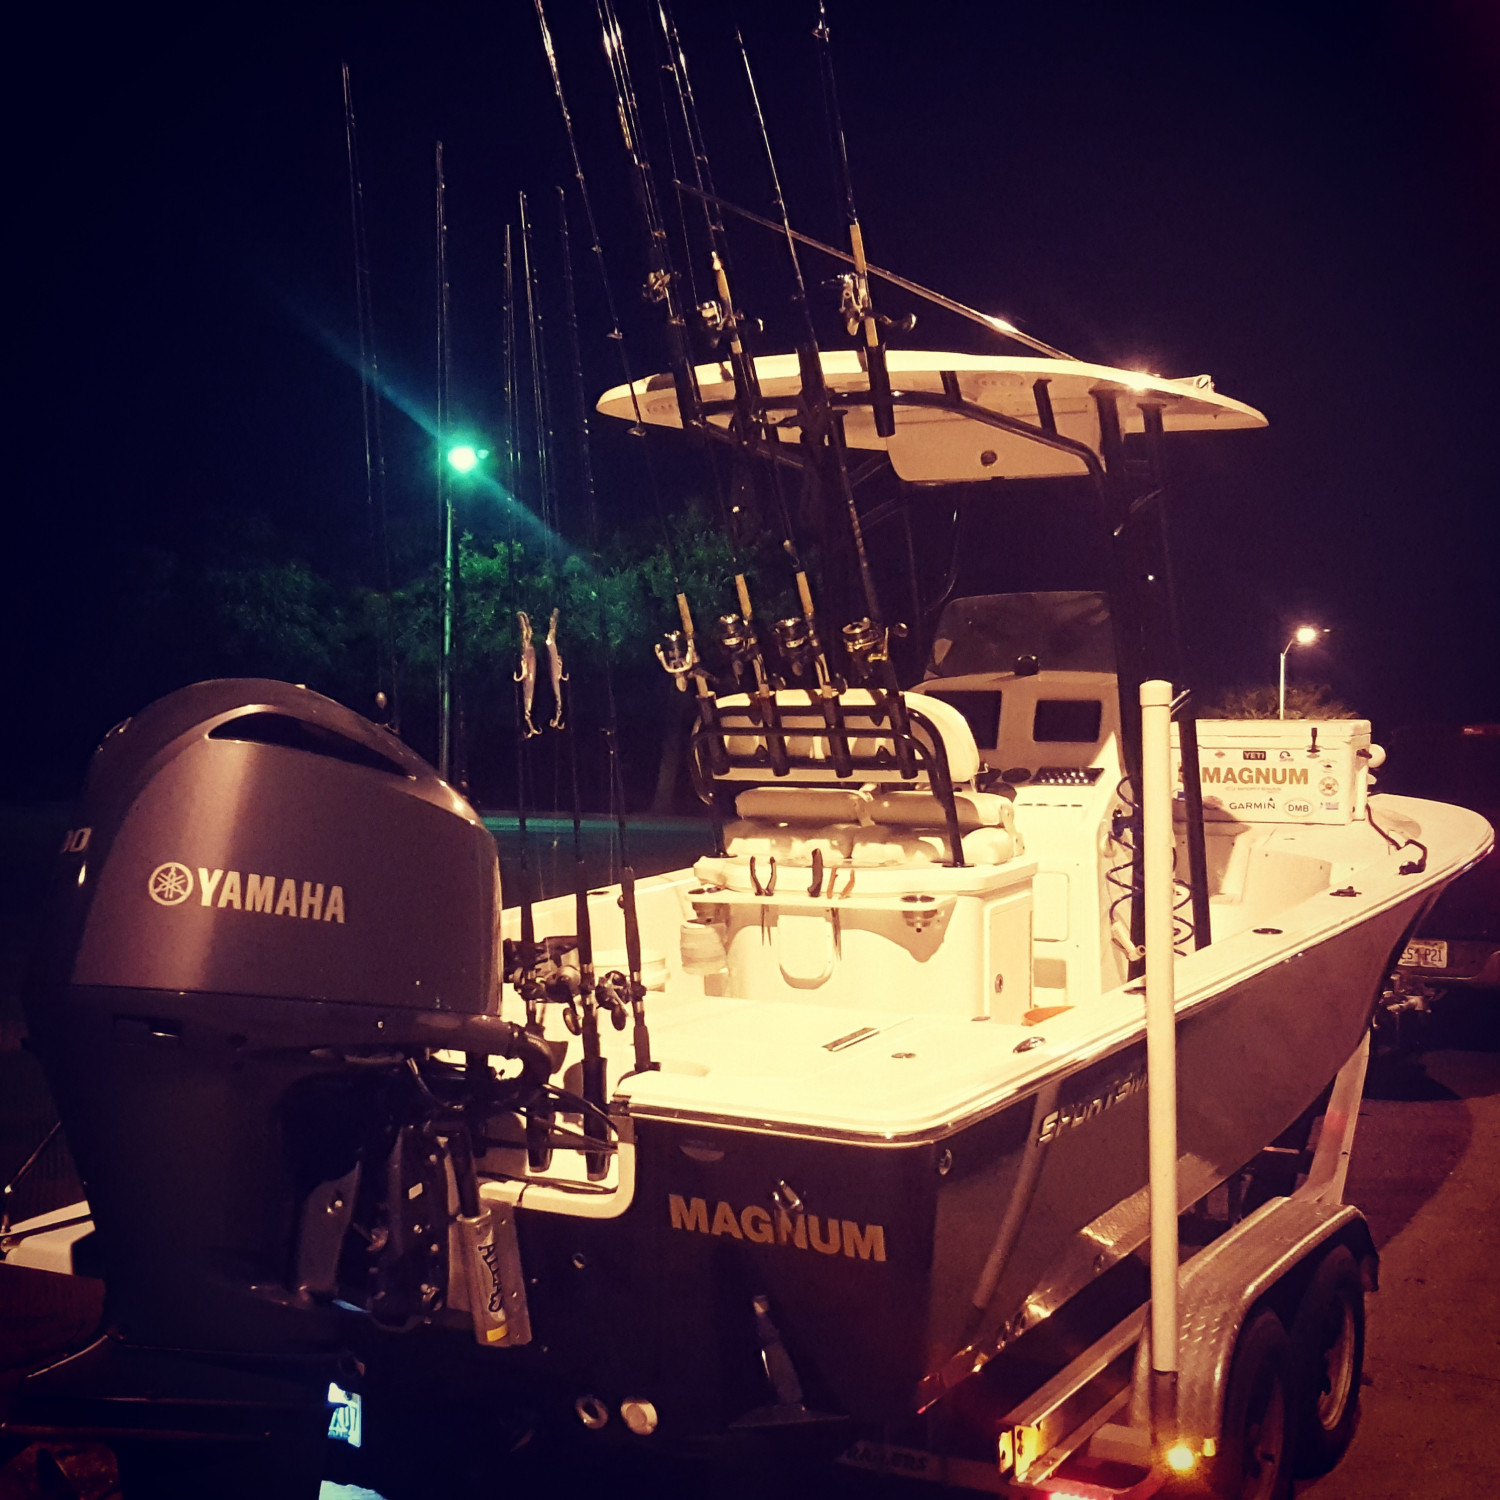 Title: MAGNUM - On board their Sportsman Masters 247 Bay Boat - Location: Sarasota, FL. Participating in the Photo Contest #SportsmanDecember2017